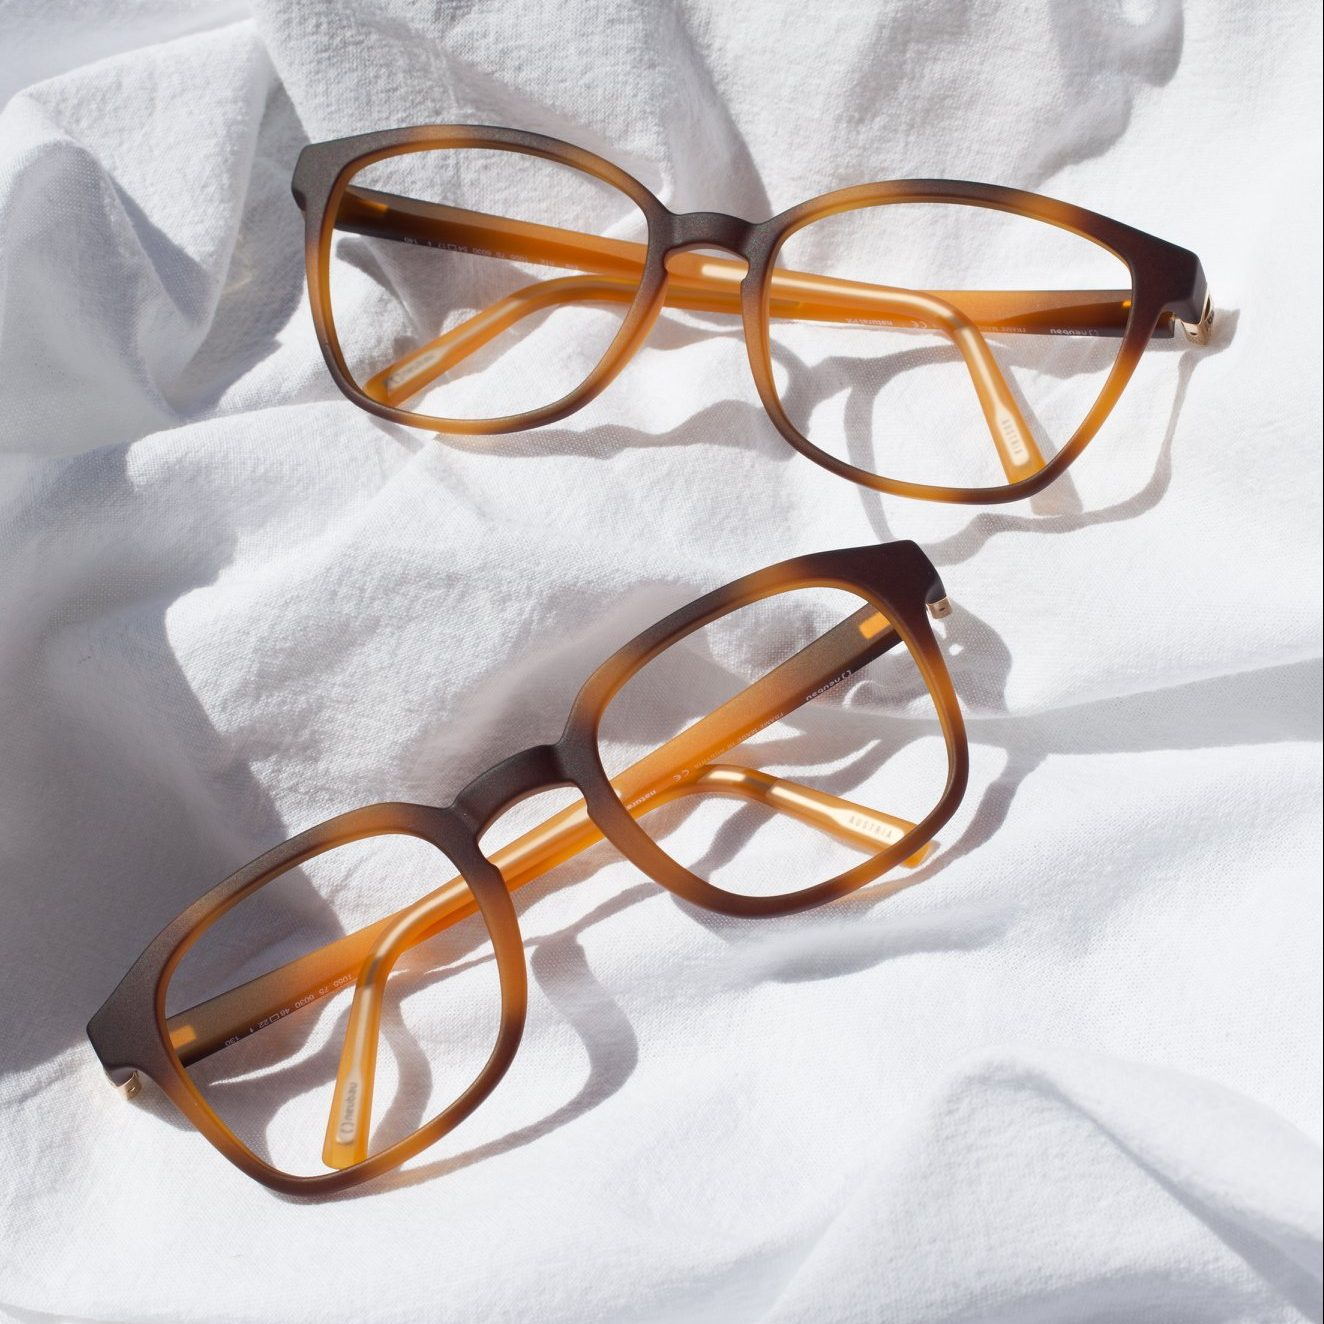 Welcome to our latest sustainable eyewear brand, Neubau